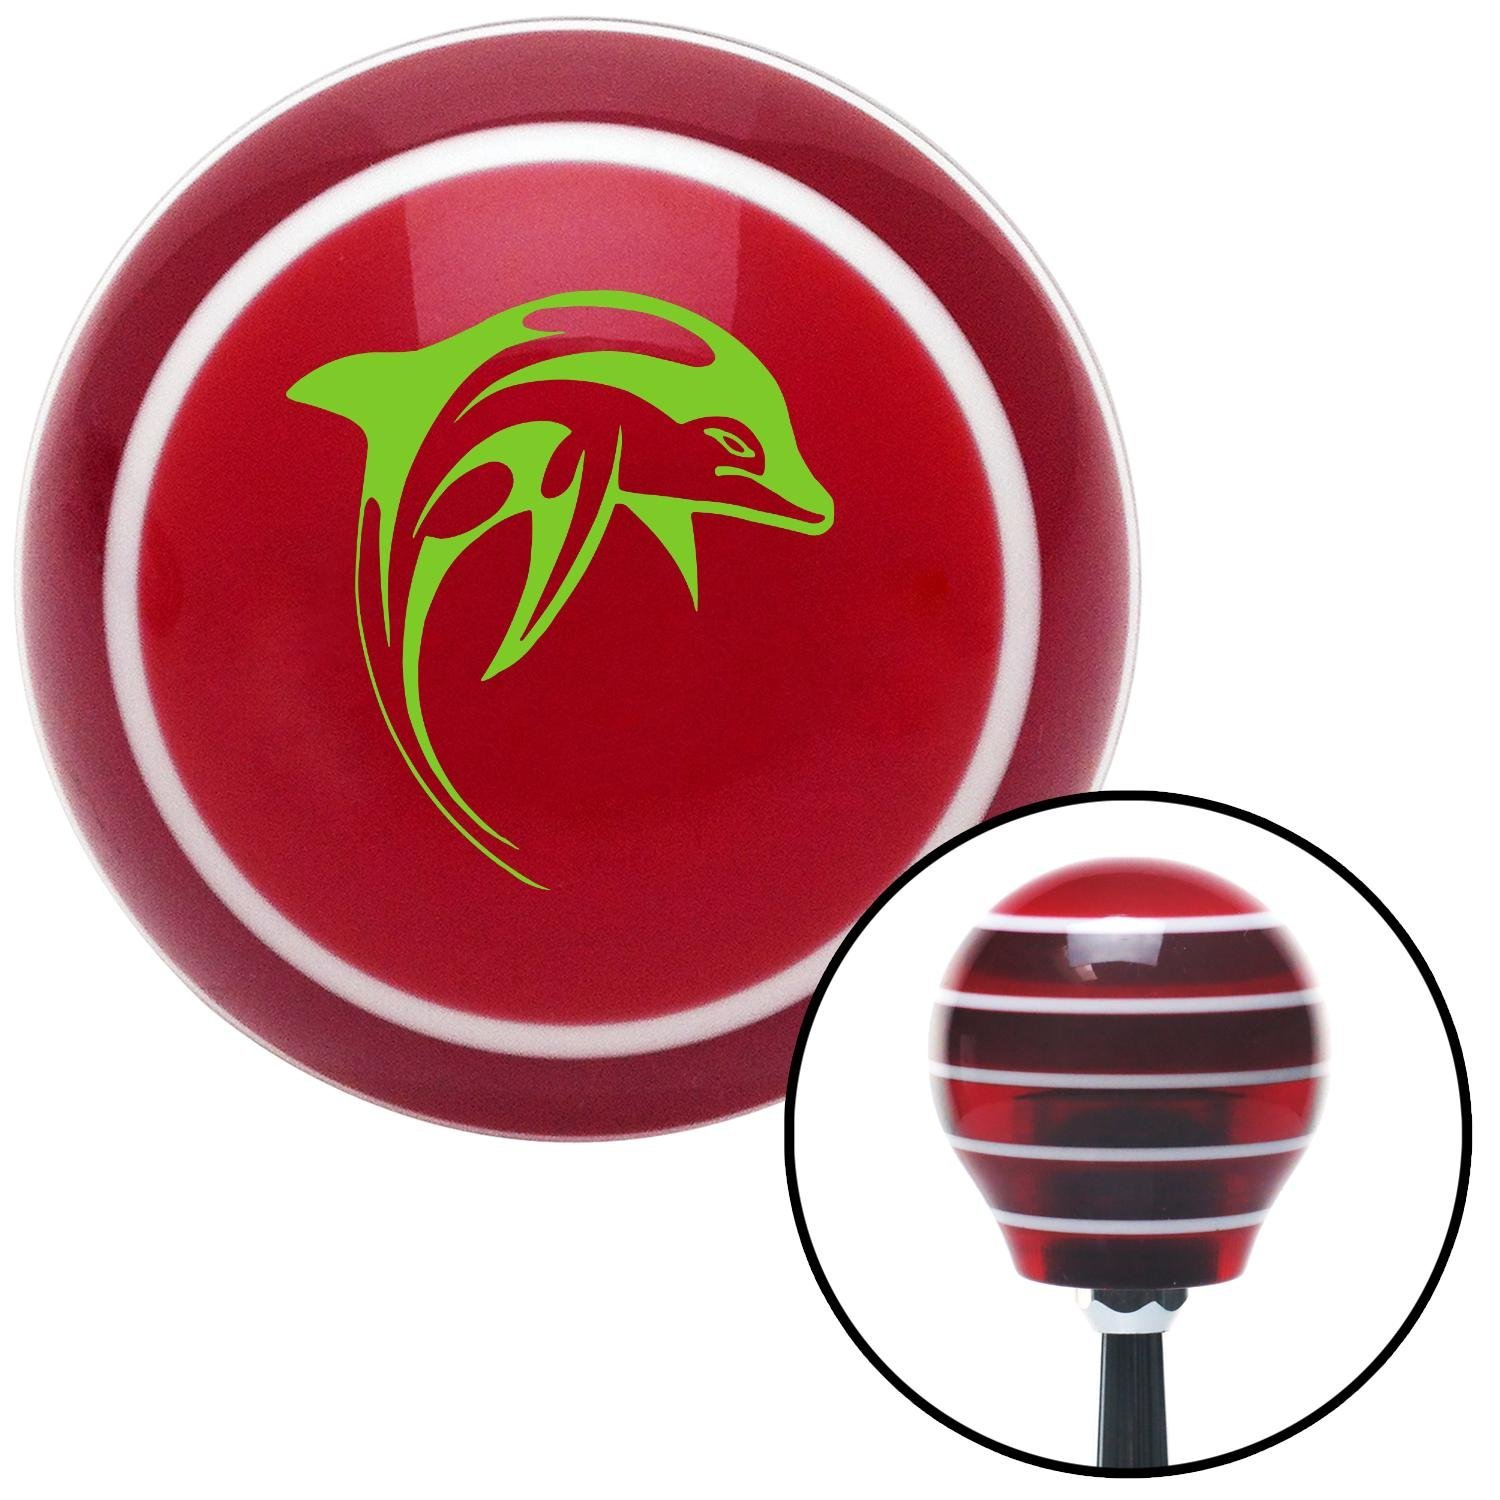 American Shifter 115032 Red Stripe Shift Knob with M16 x 1.5 Insert Green Marine Dolphin #2